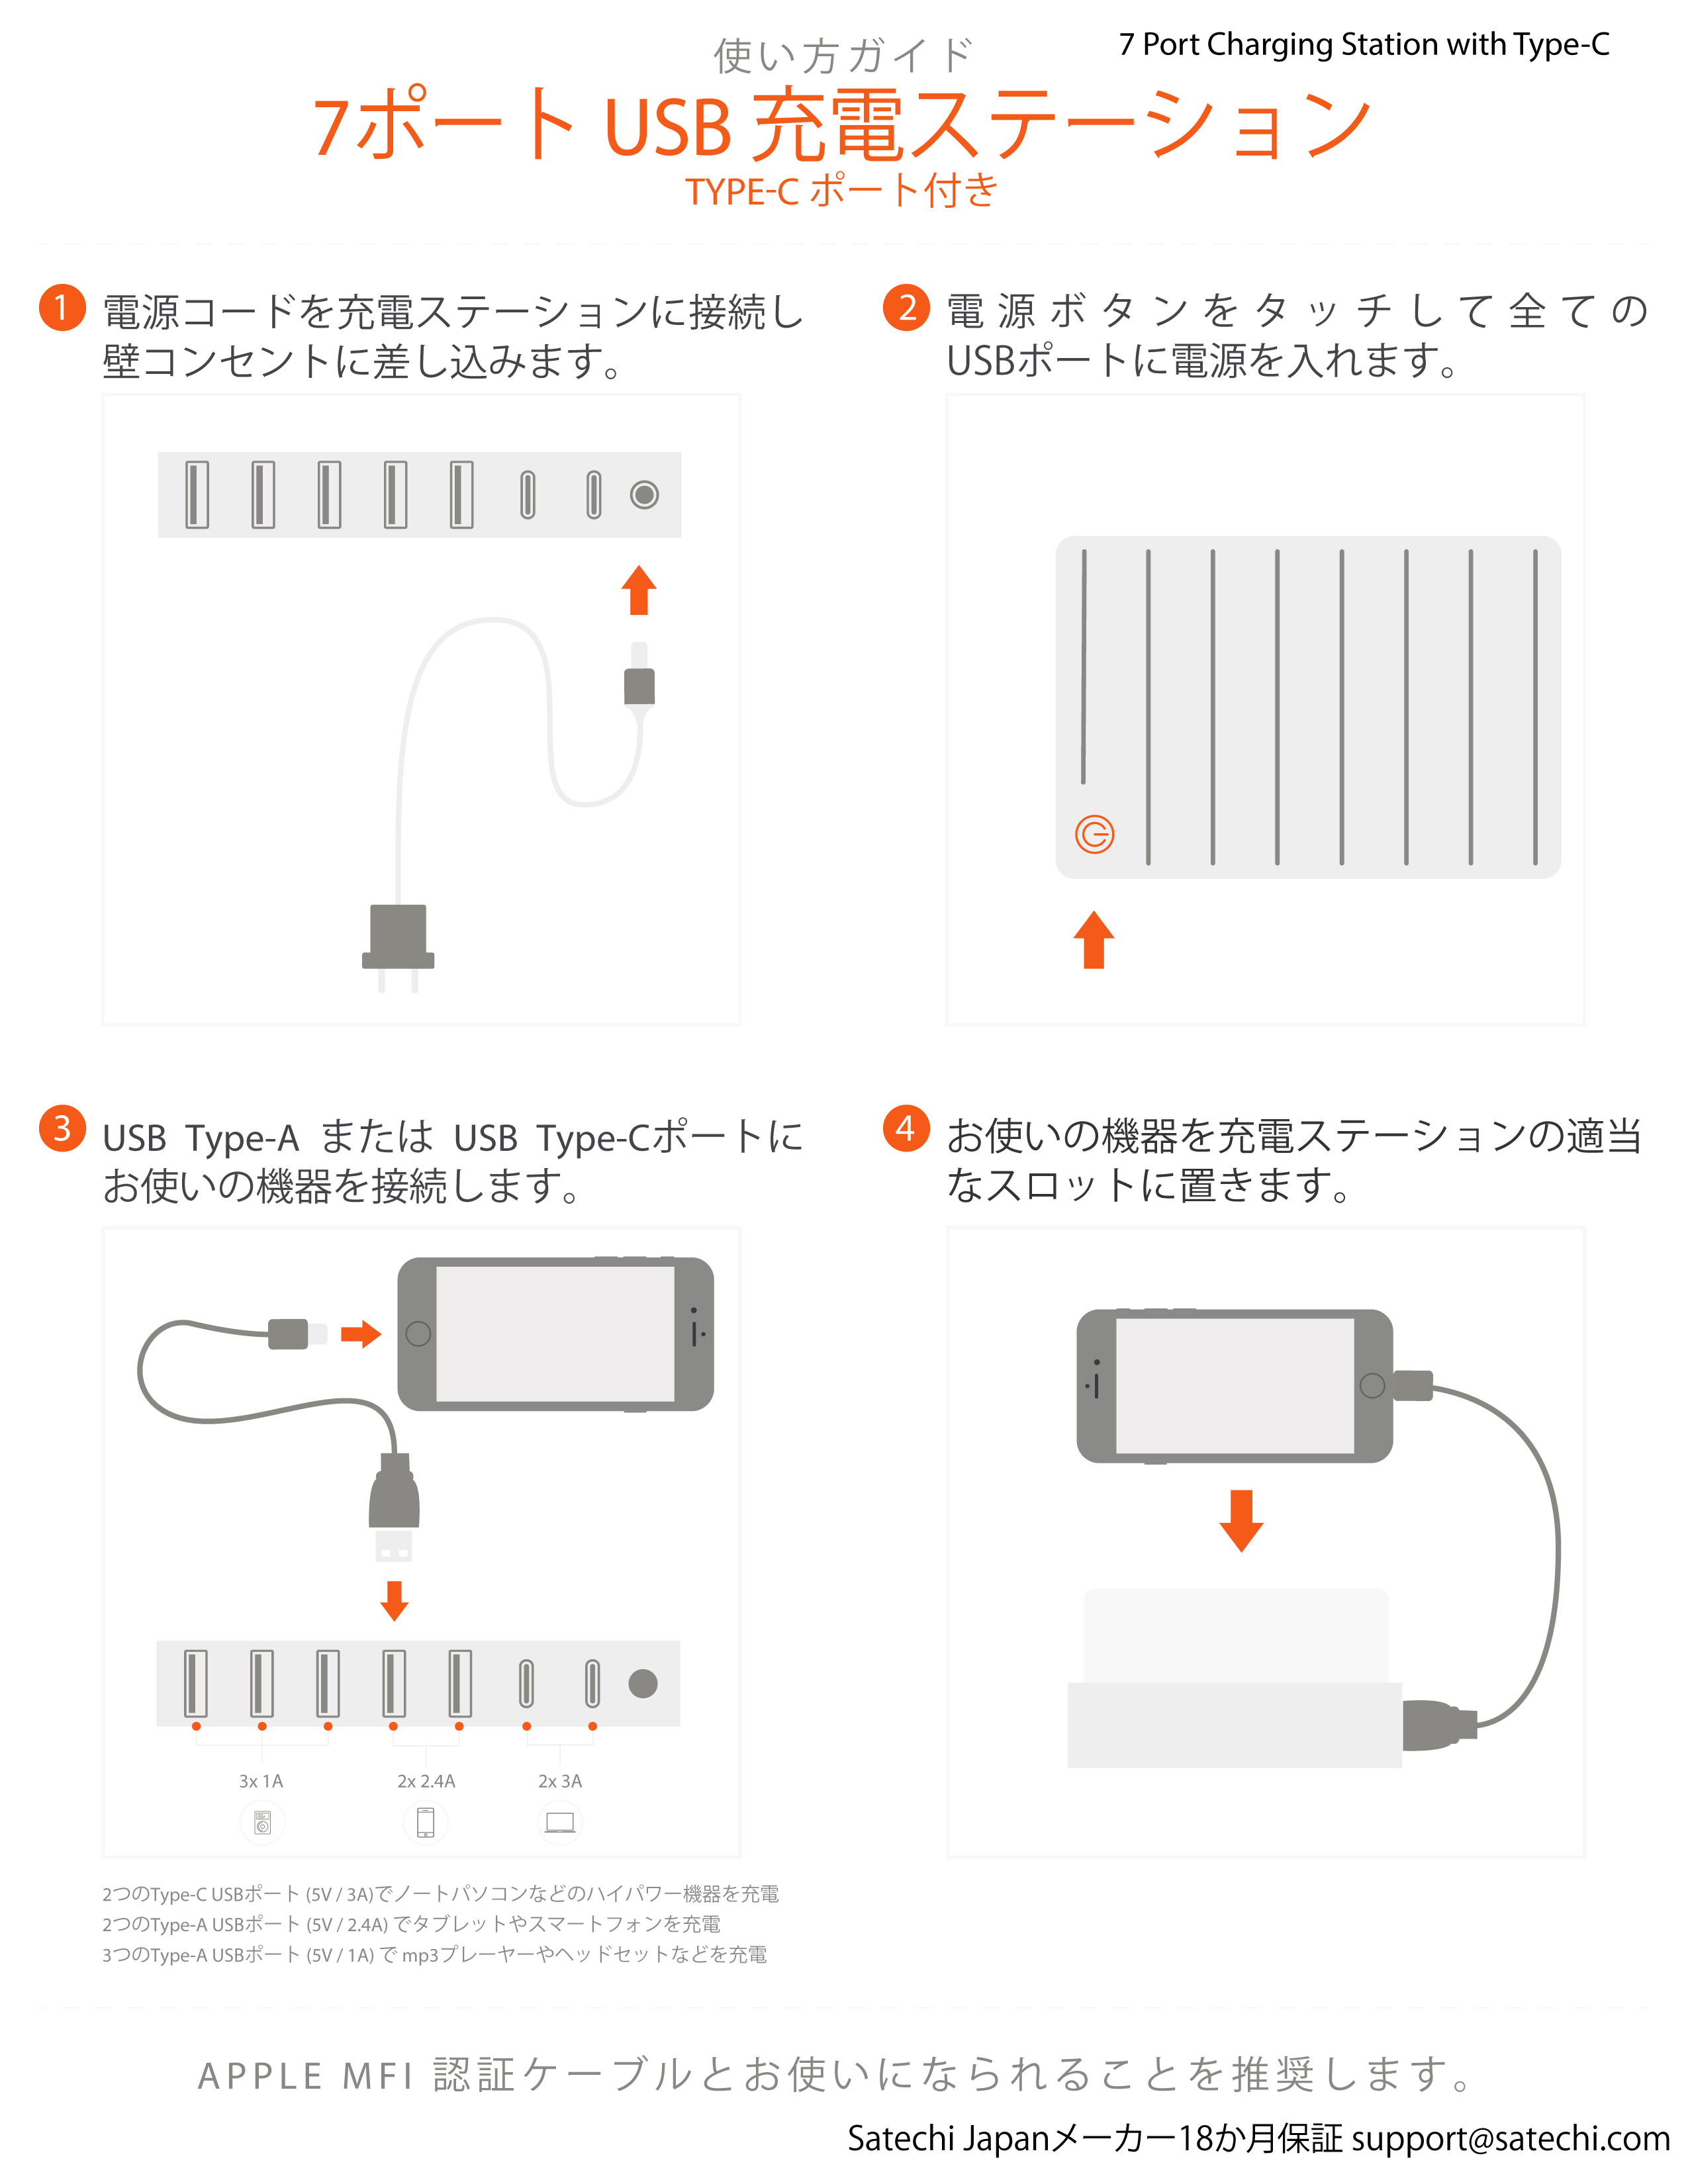 7_Port_Charging_Station_with_Type-C.jpg